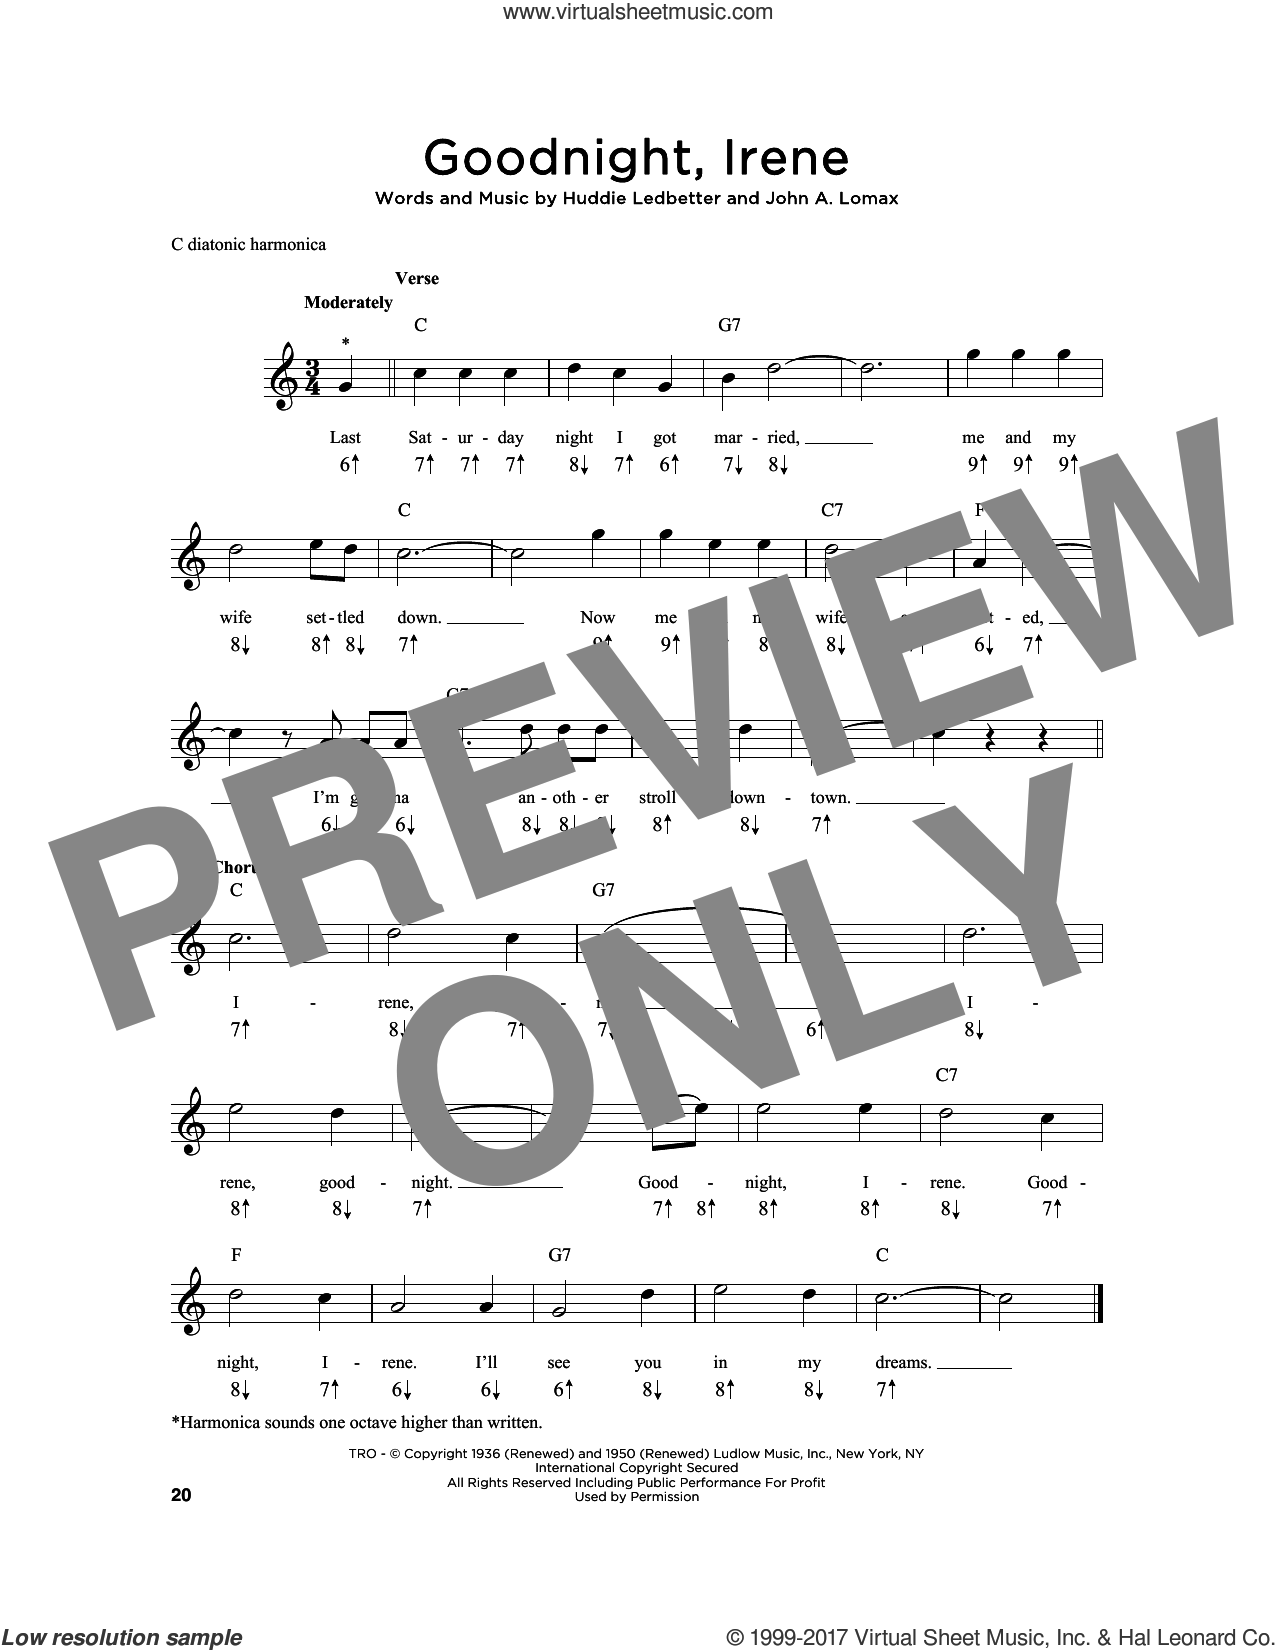 Goodnight, Irene sheet music for harmonica solo by John A. Lomax, Ernest Tubb & Red Foley, Peter, Paul & Mary and Huddie Ledbetter, intermediate skill level